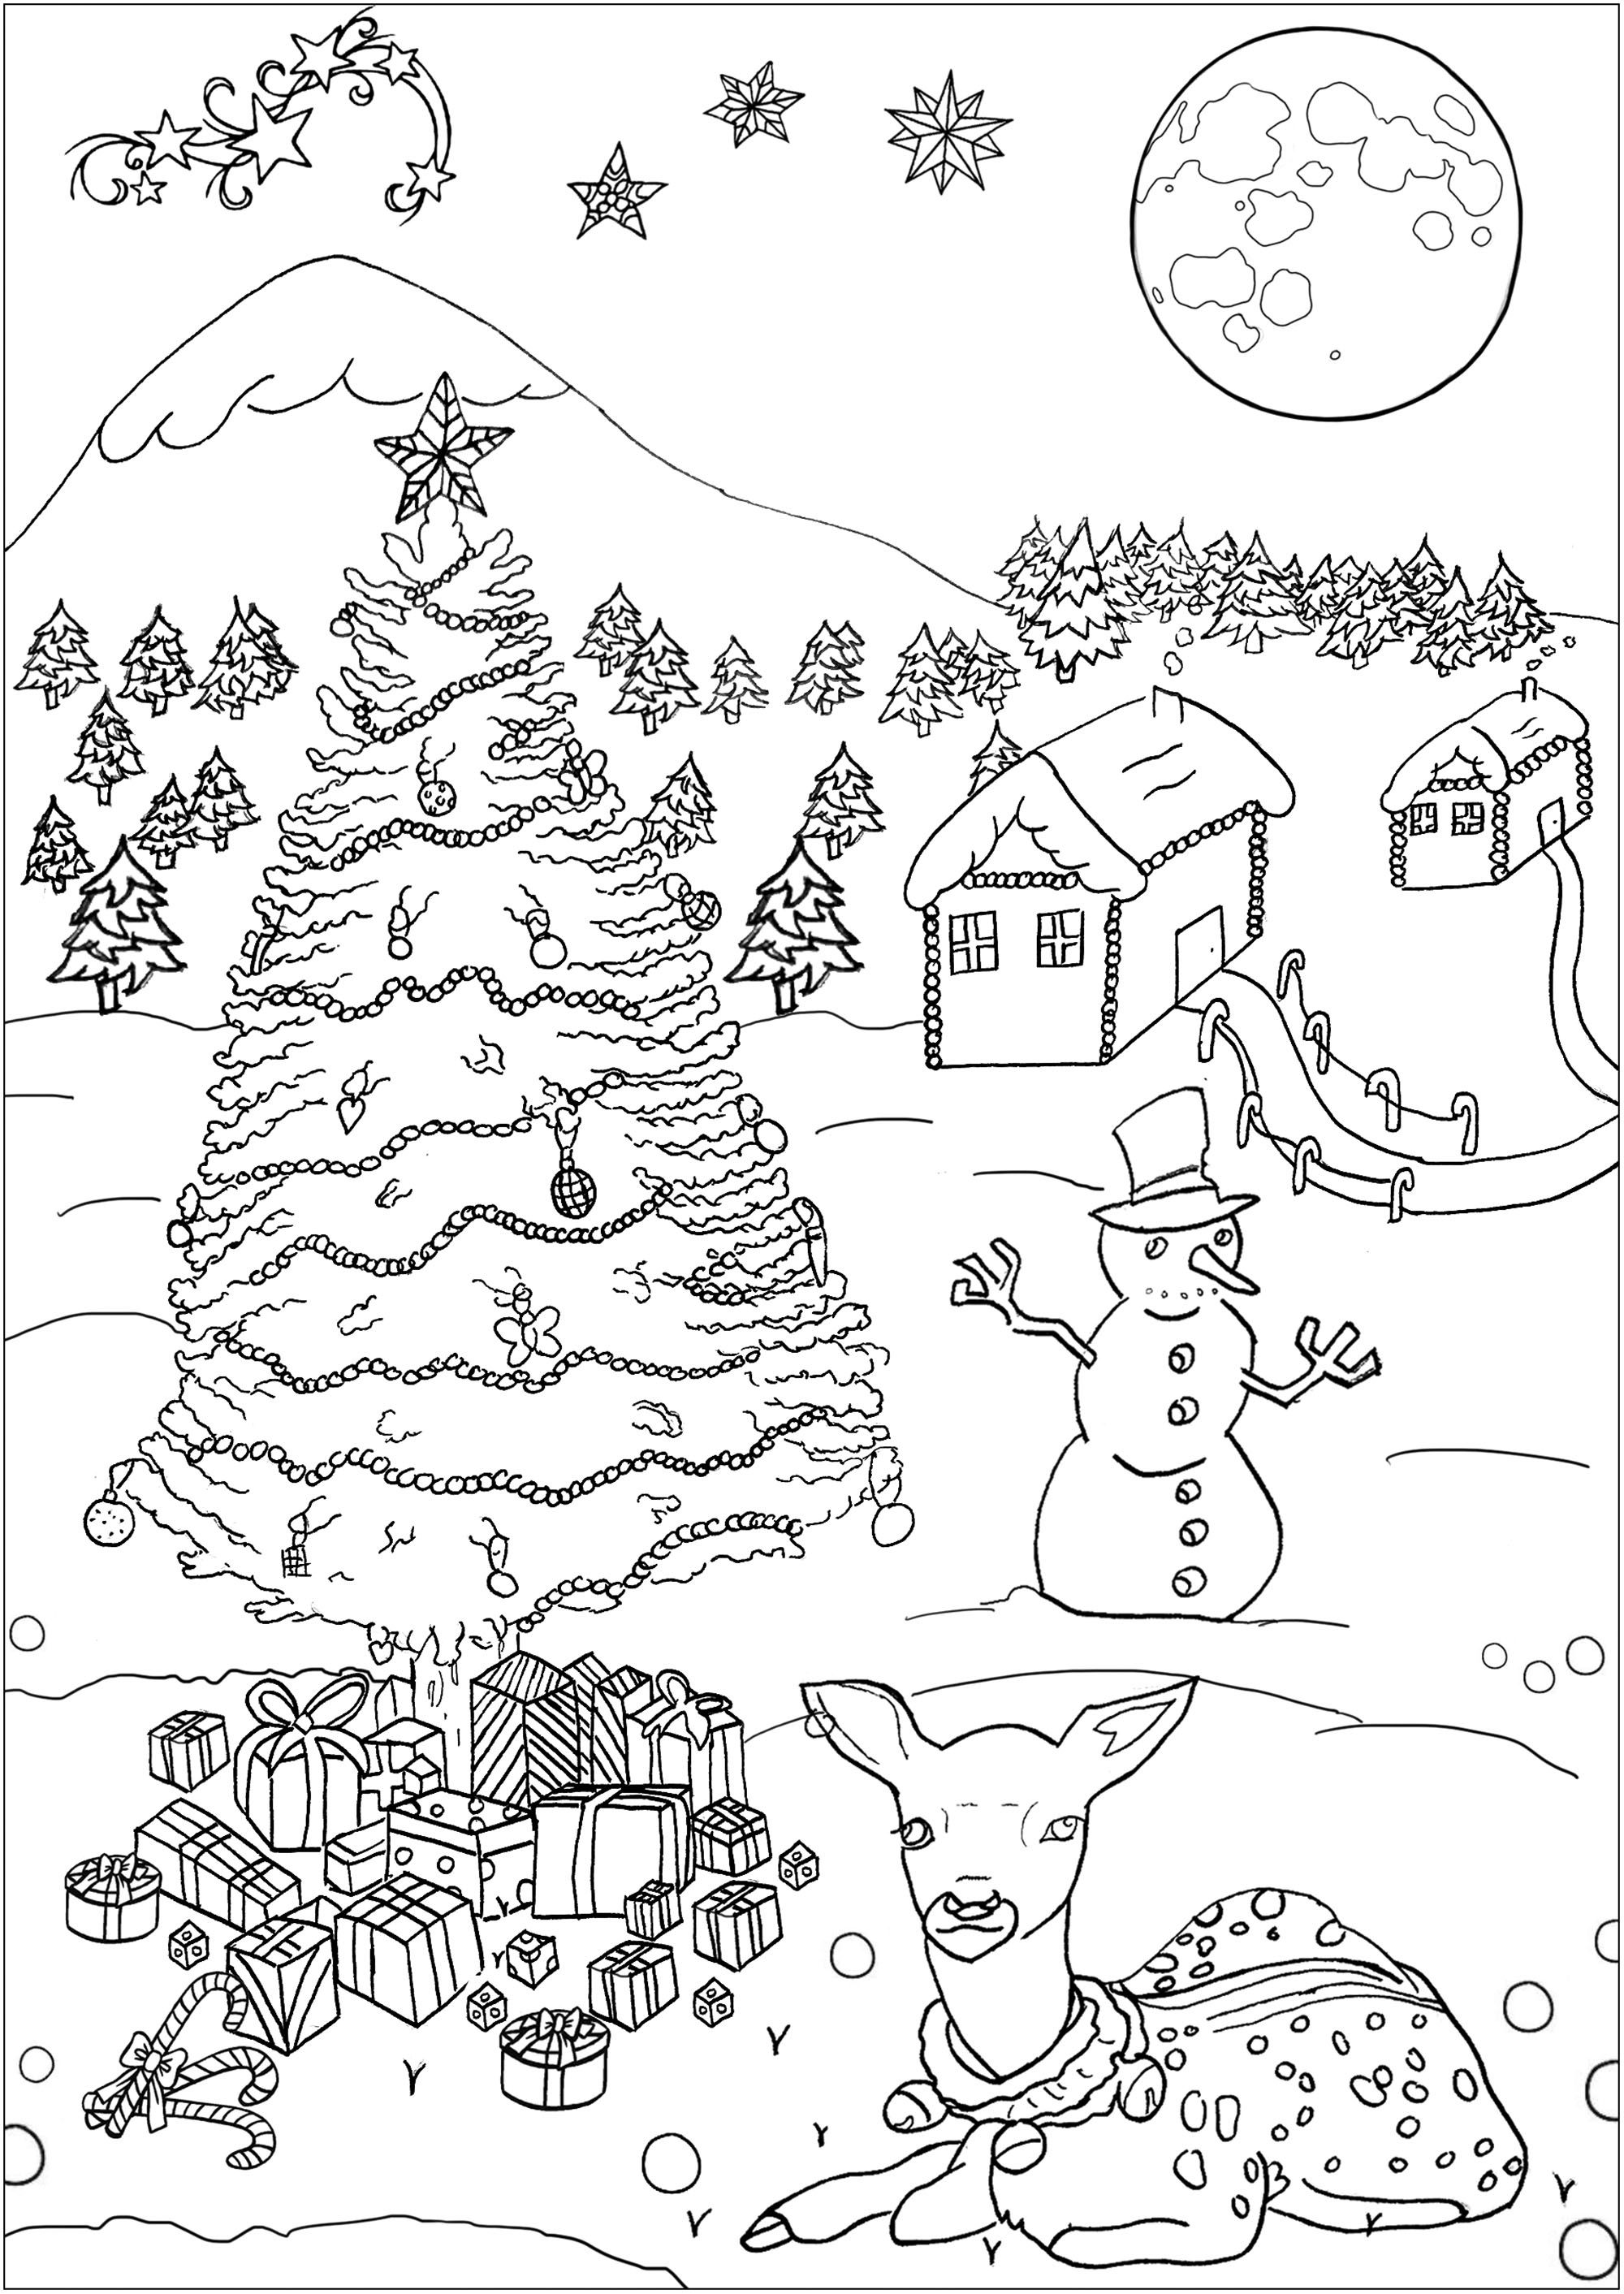 Christmas Landscape Christmas Coloring Page With A Pretty Lodge A Tree A Snowm Christmas Tree Coloring Page Coloring Pages Winter Christmas Coloring Pages